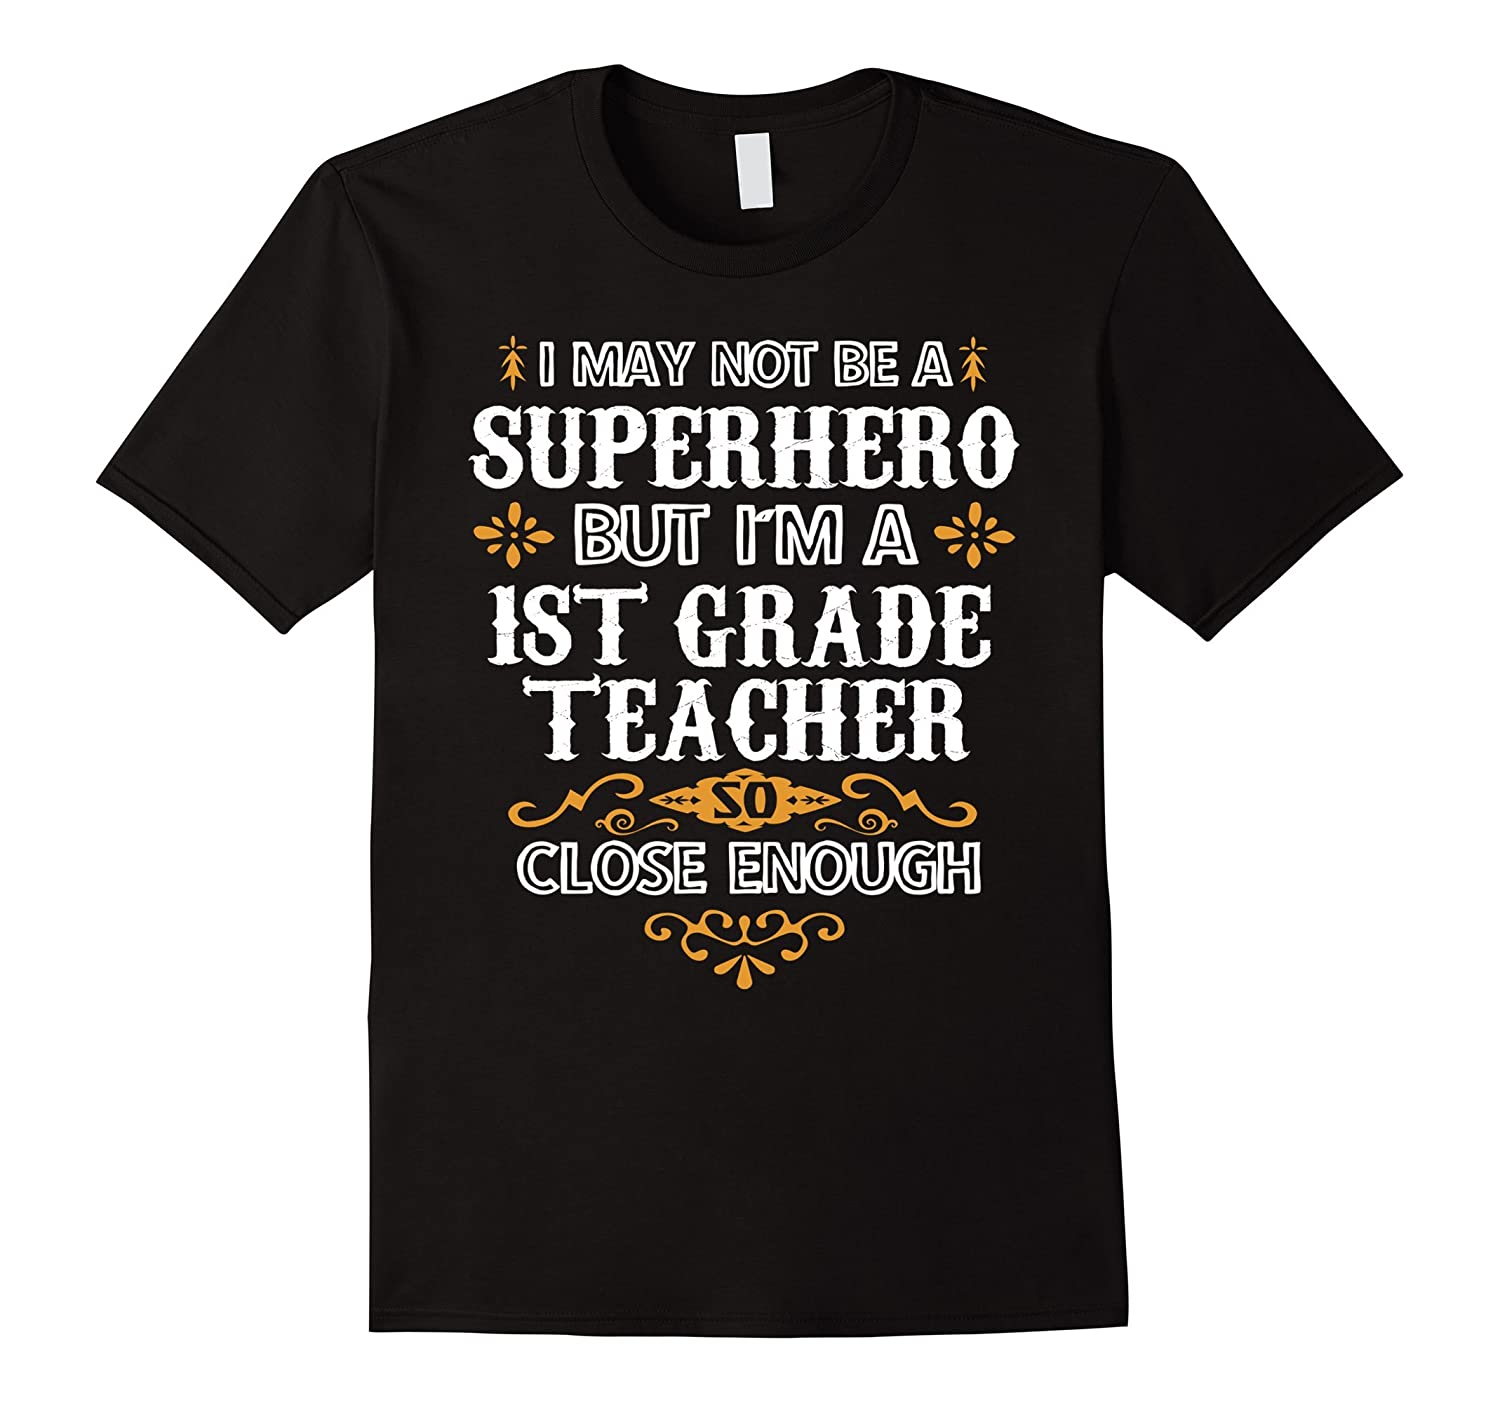 1st First Grade Teacher Shirt Not Superhero Funny Gift Tee-CD